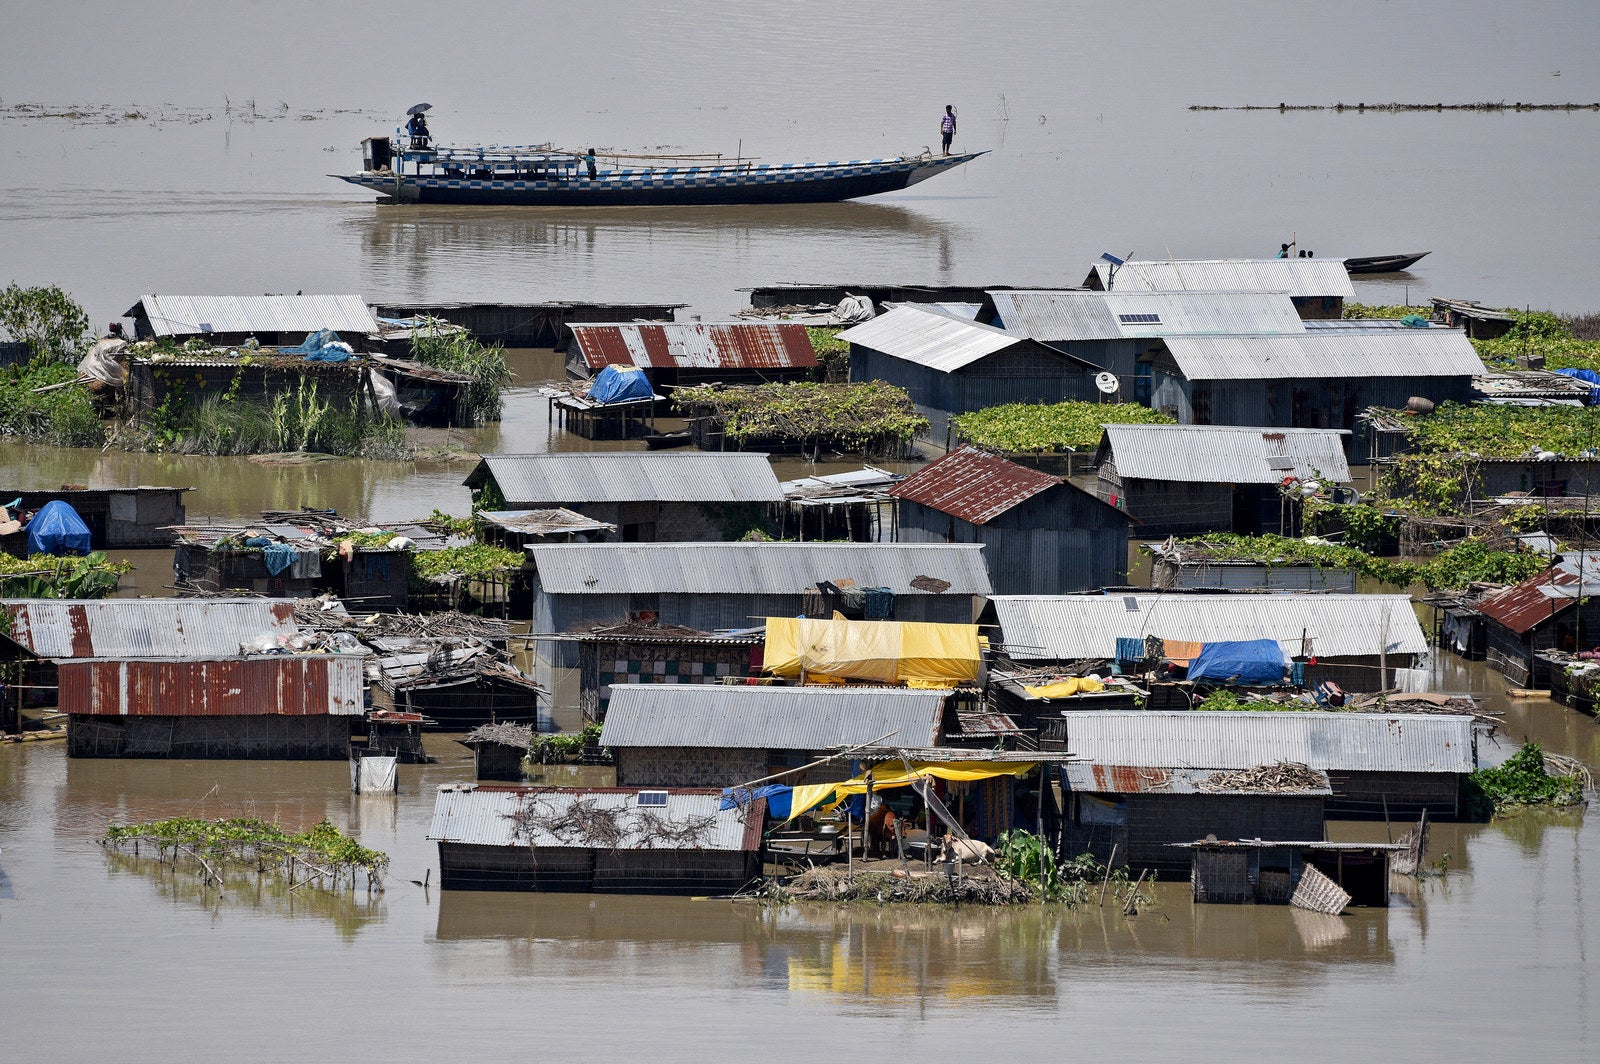 Houses are partially submerged by floods in Morigaon district in Assam.